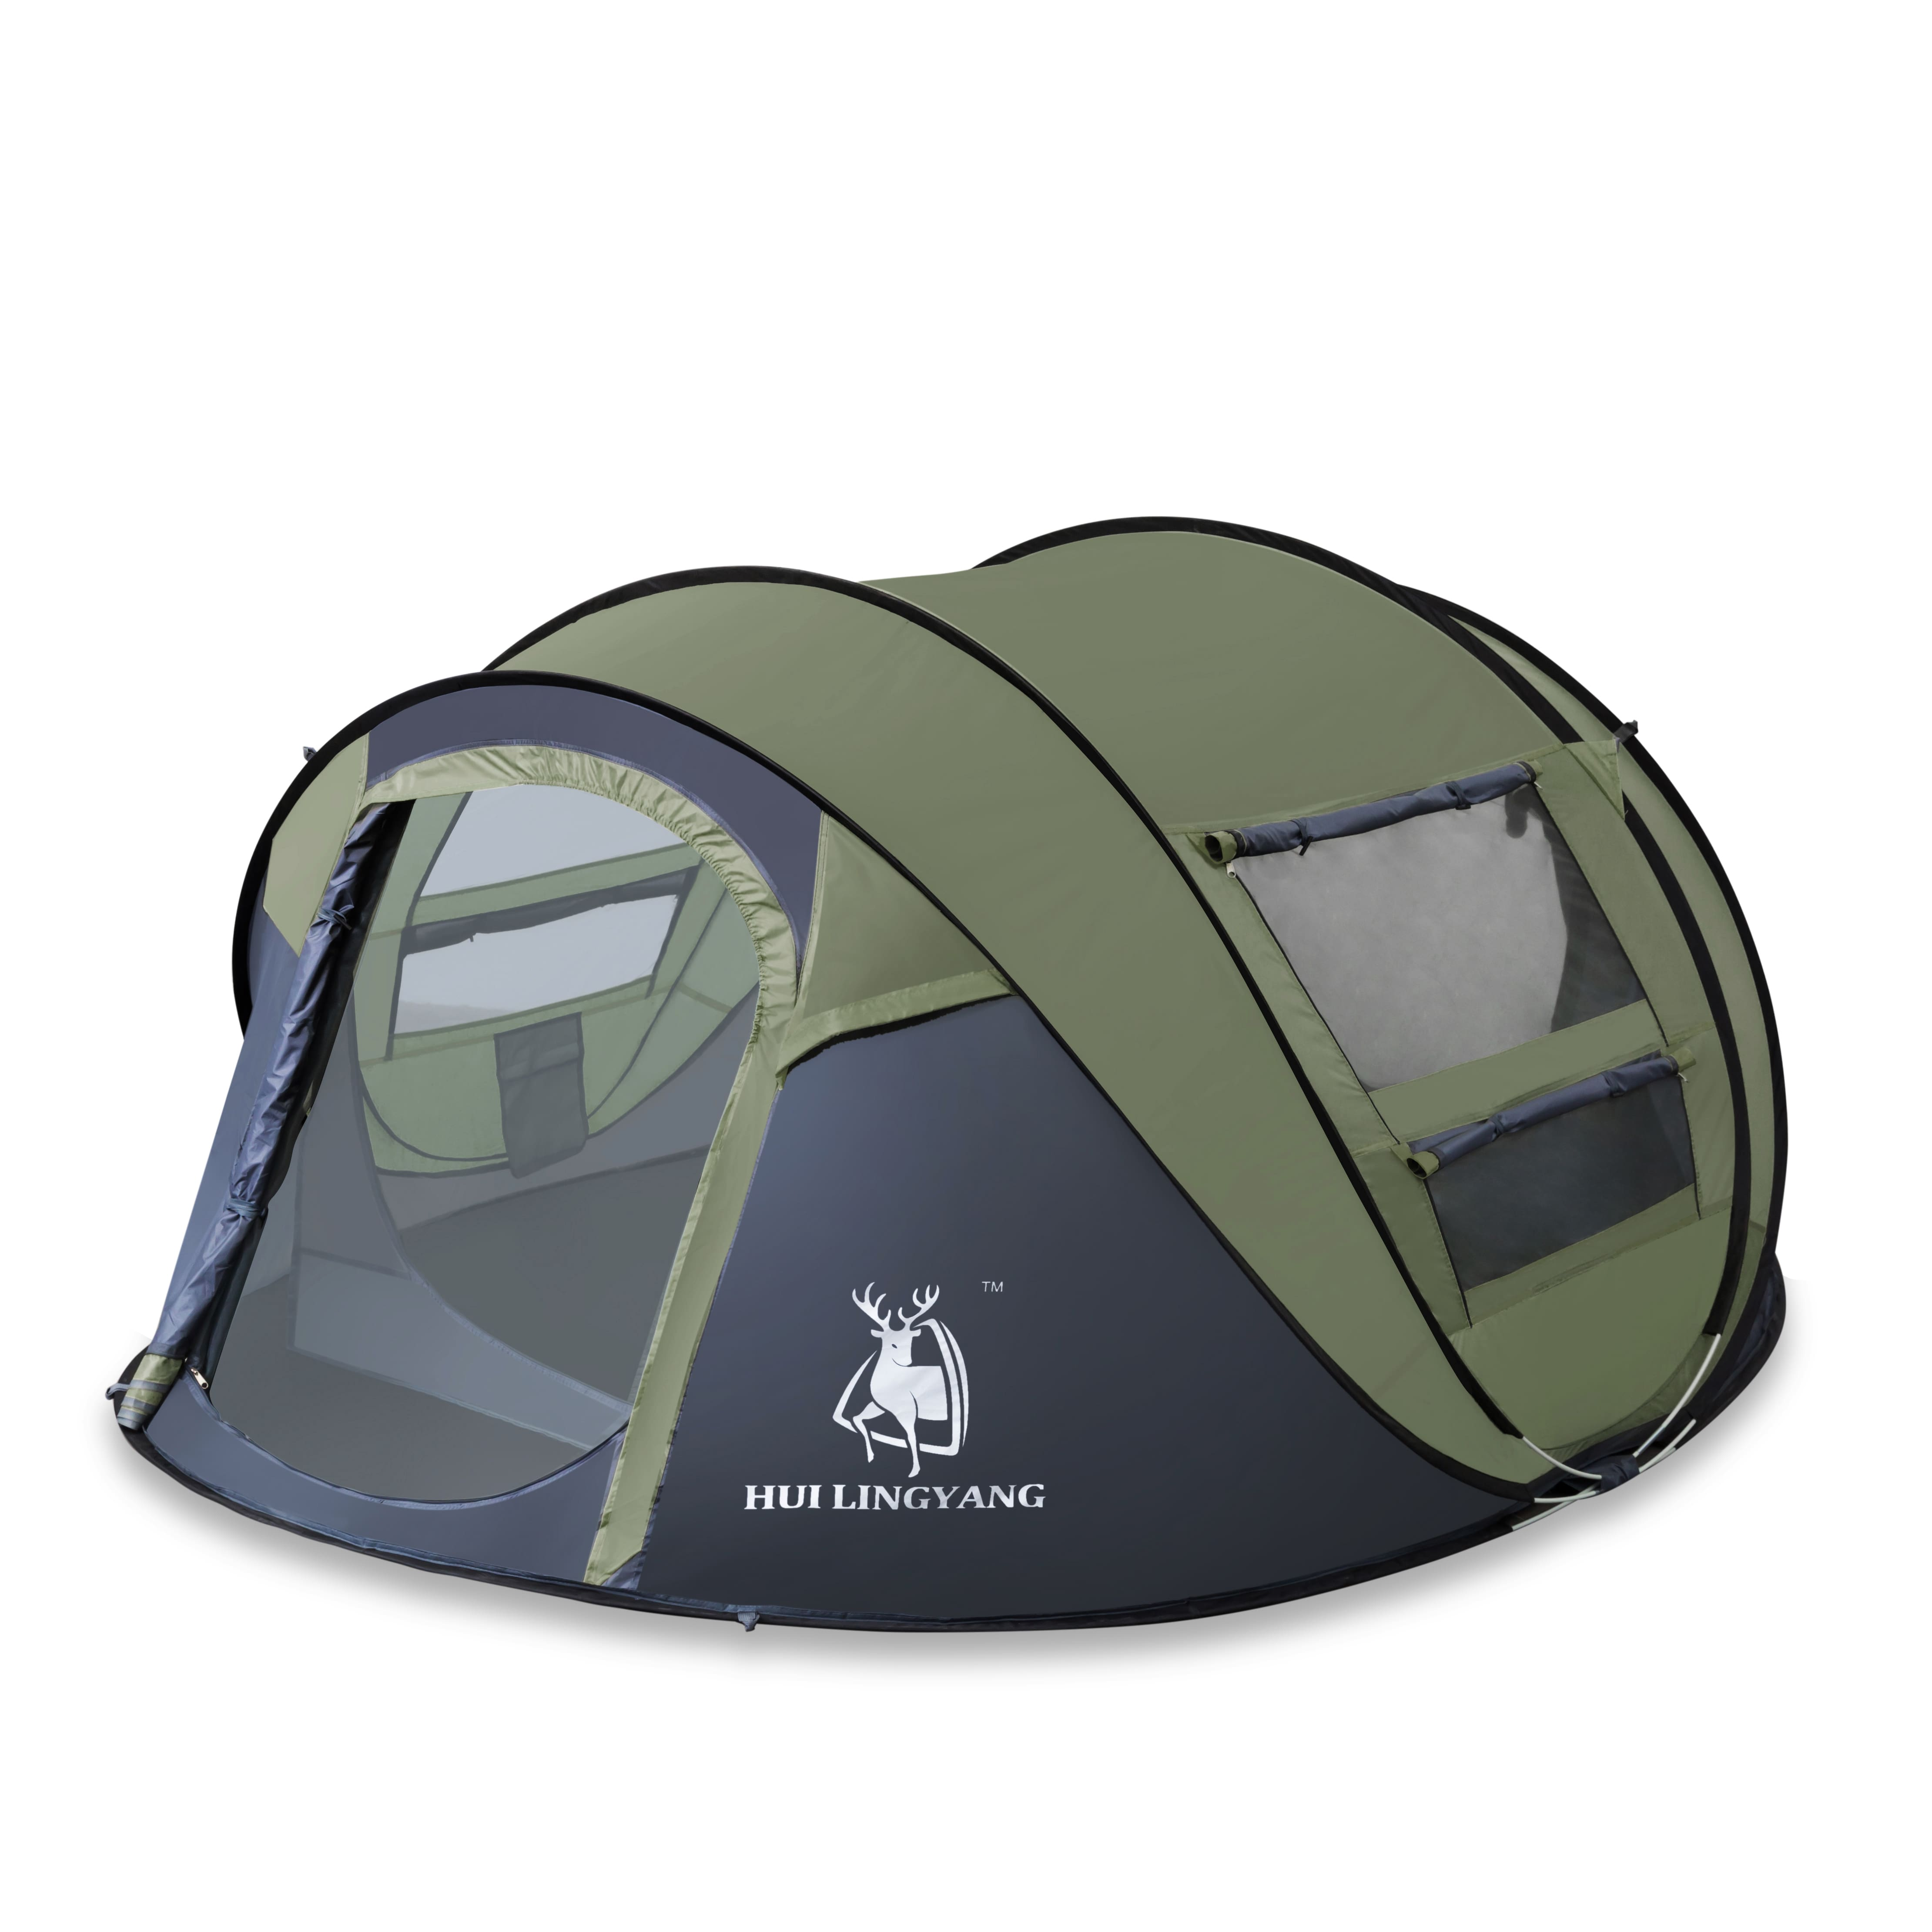 Amazon Lighting Deal Sale 4 Person Pop Up Camping Tent For $72.99 Save $53  42